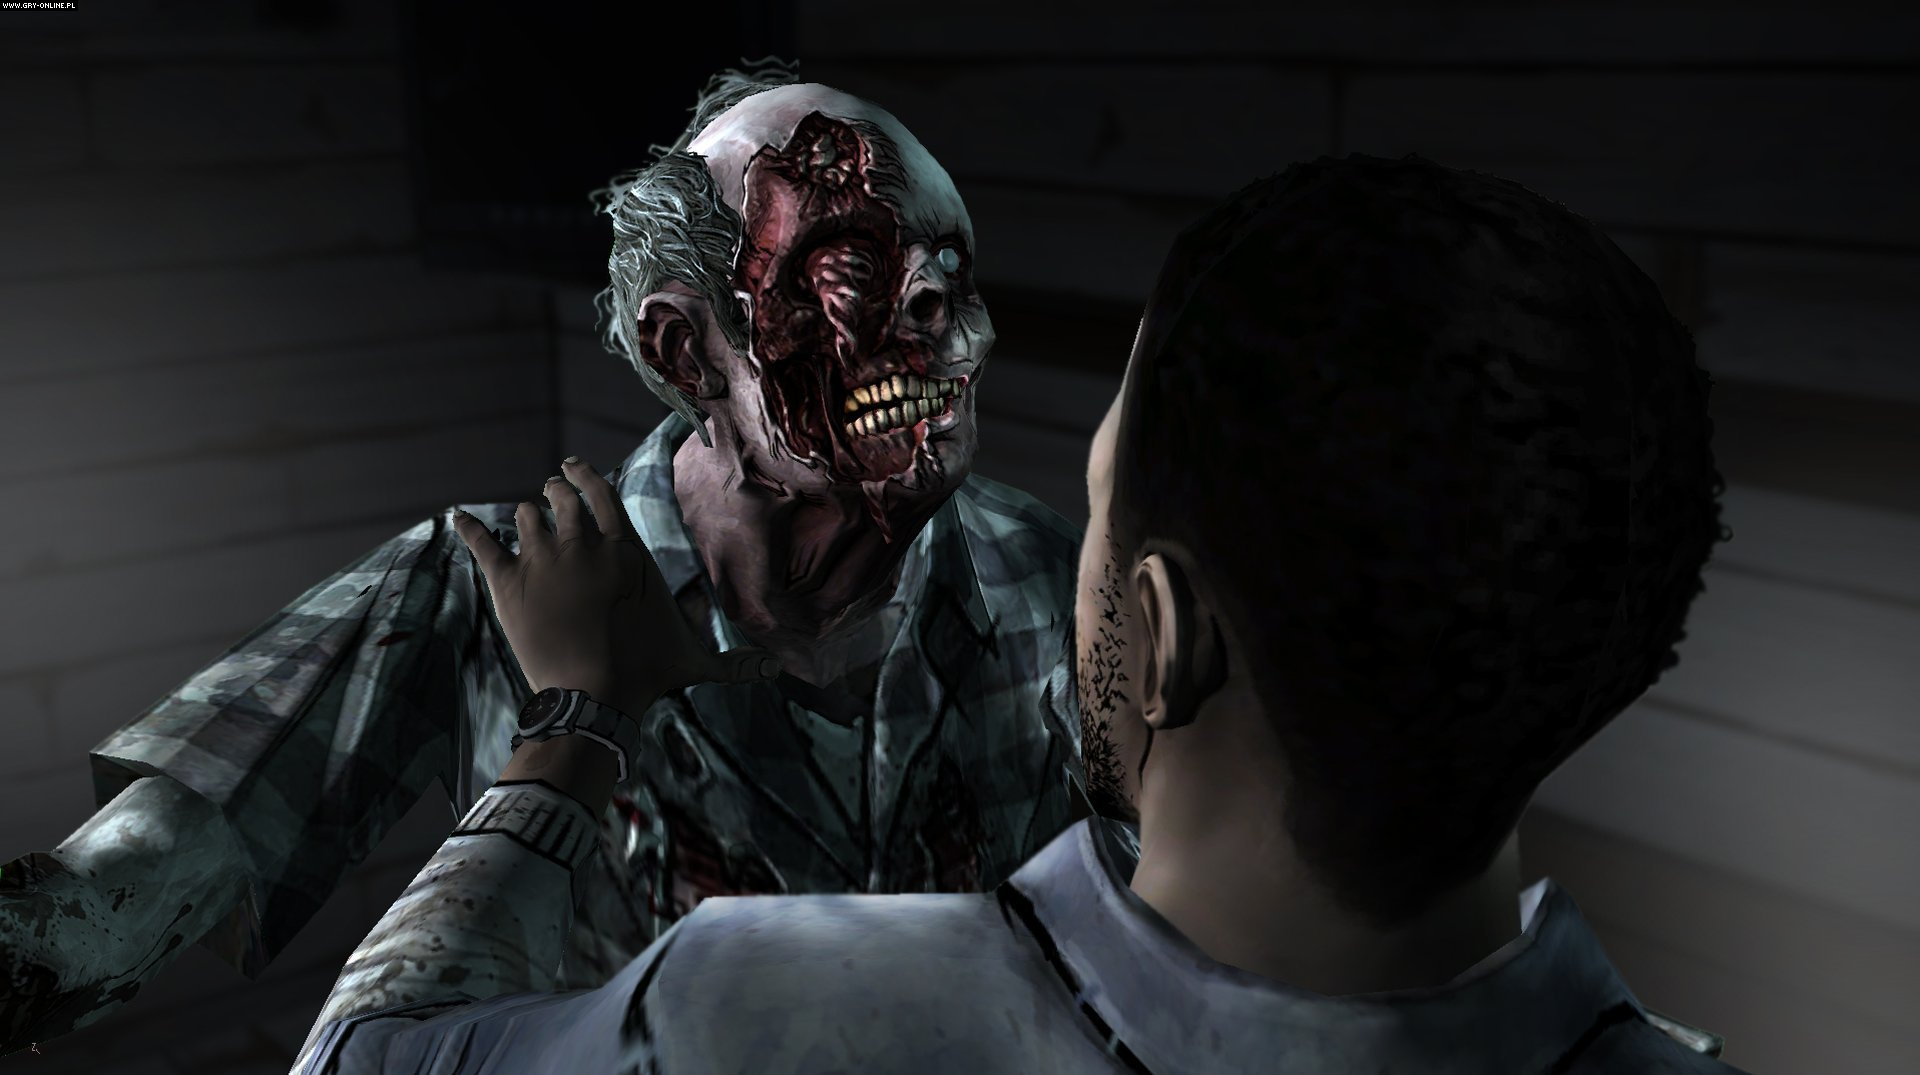 The Walking Dead: A Telltale Games Series - Season One PC, X360, PS3, AND, iOS, Switch Gry Screen 4/30, Telltale Games